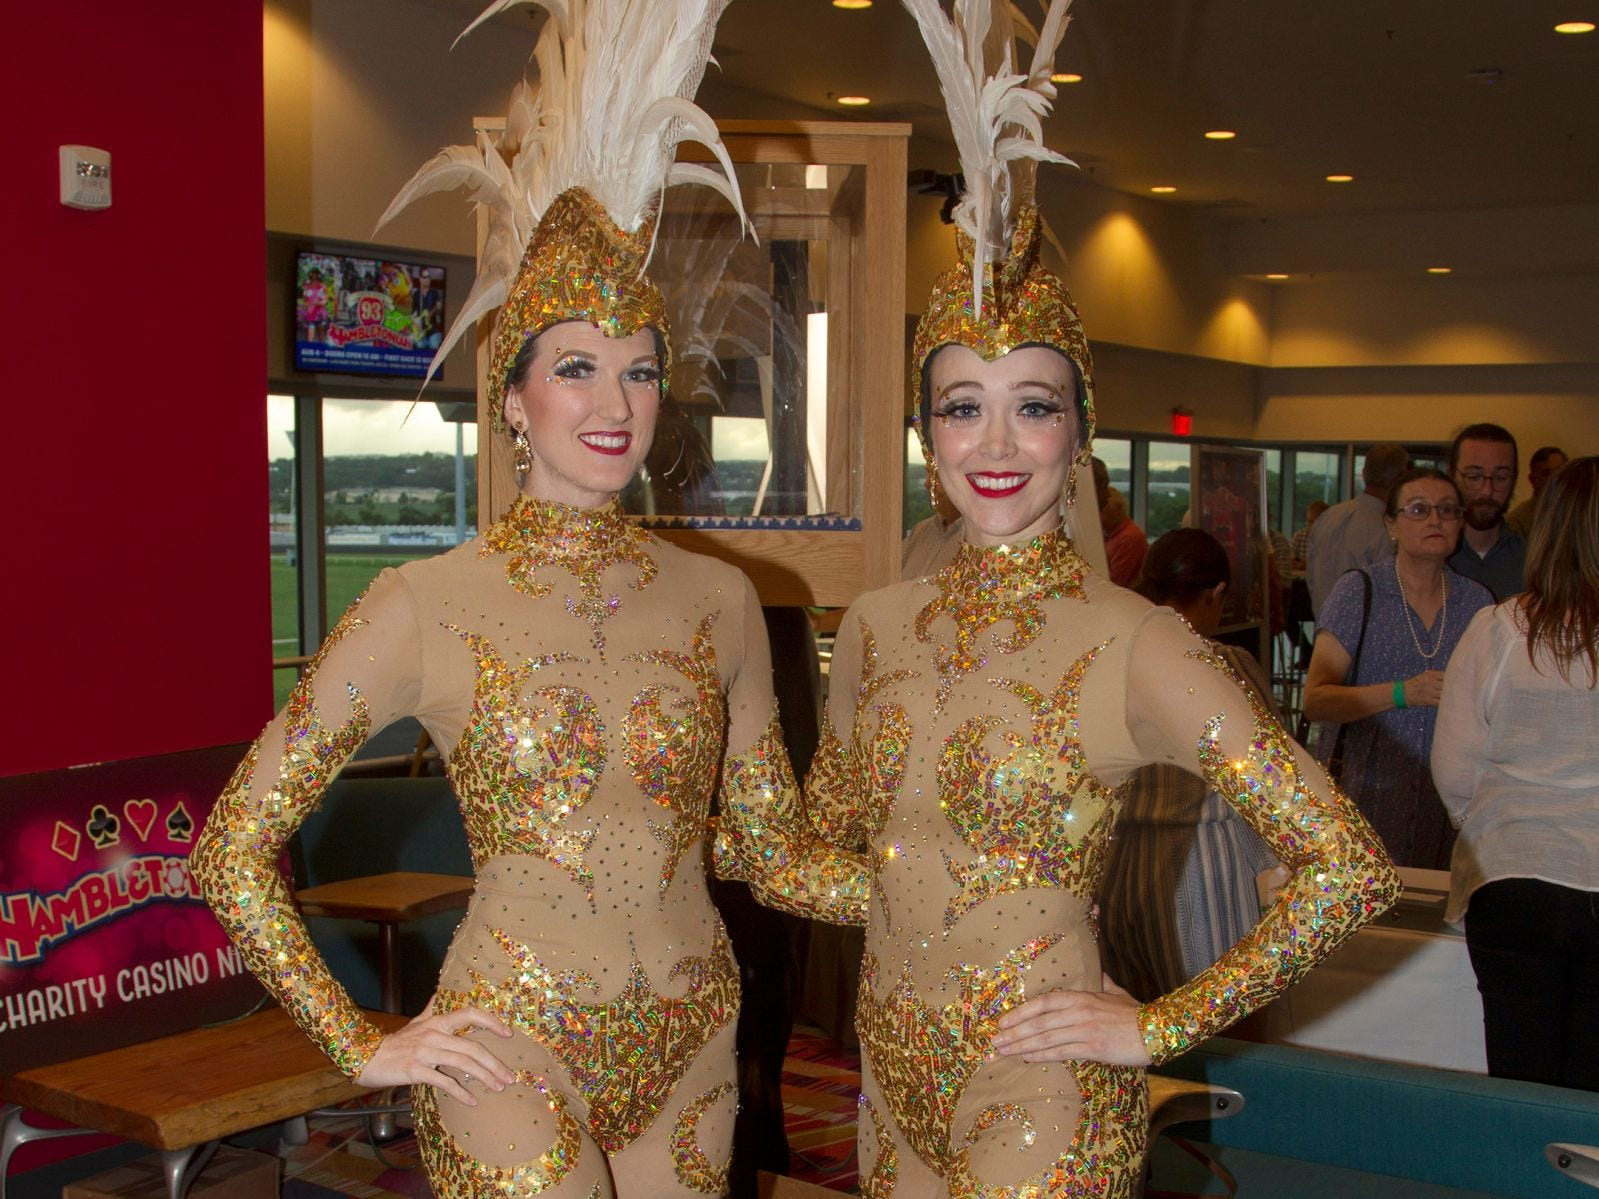 Screaming Queens - Britteny Schruefer and Sarah Burns. Meadowlands Racetrack hosted its Hambletonian Party in East Rutherford. The casino charity night featured poker, casino games, auctions, and raffles. 08/03/2018